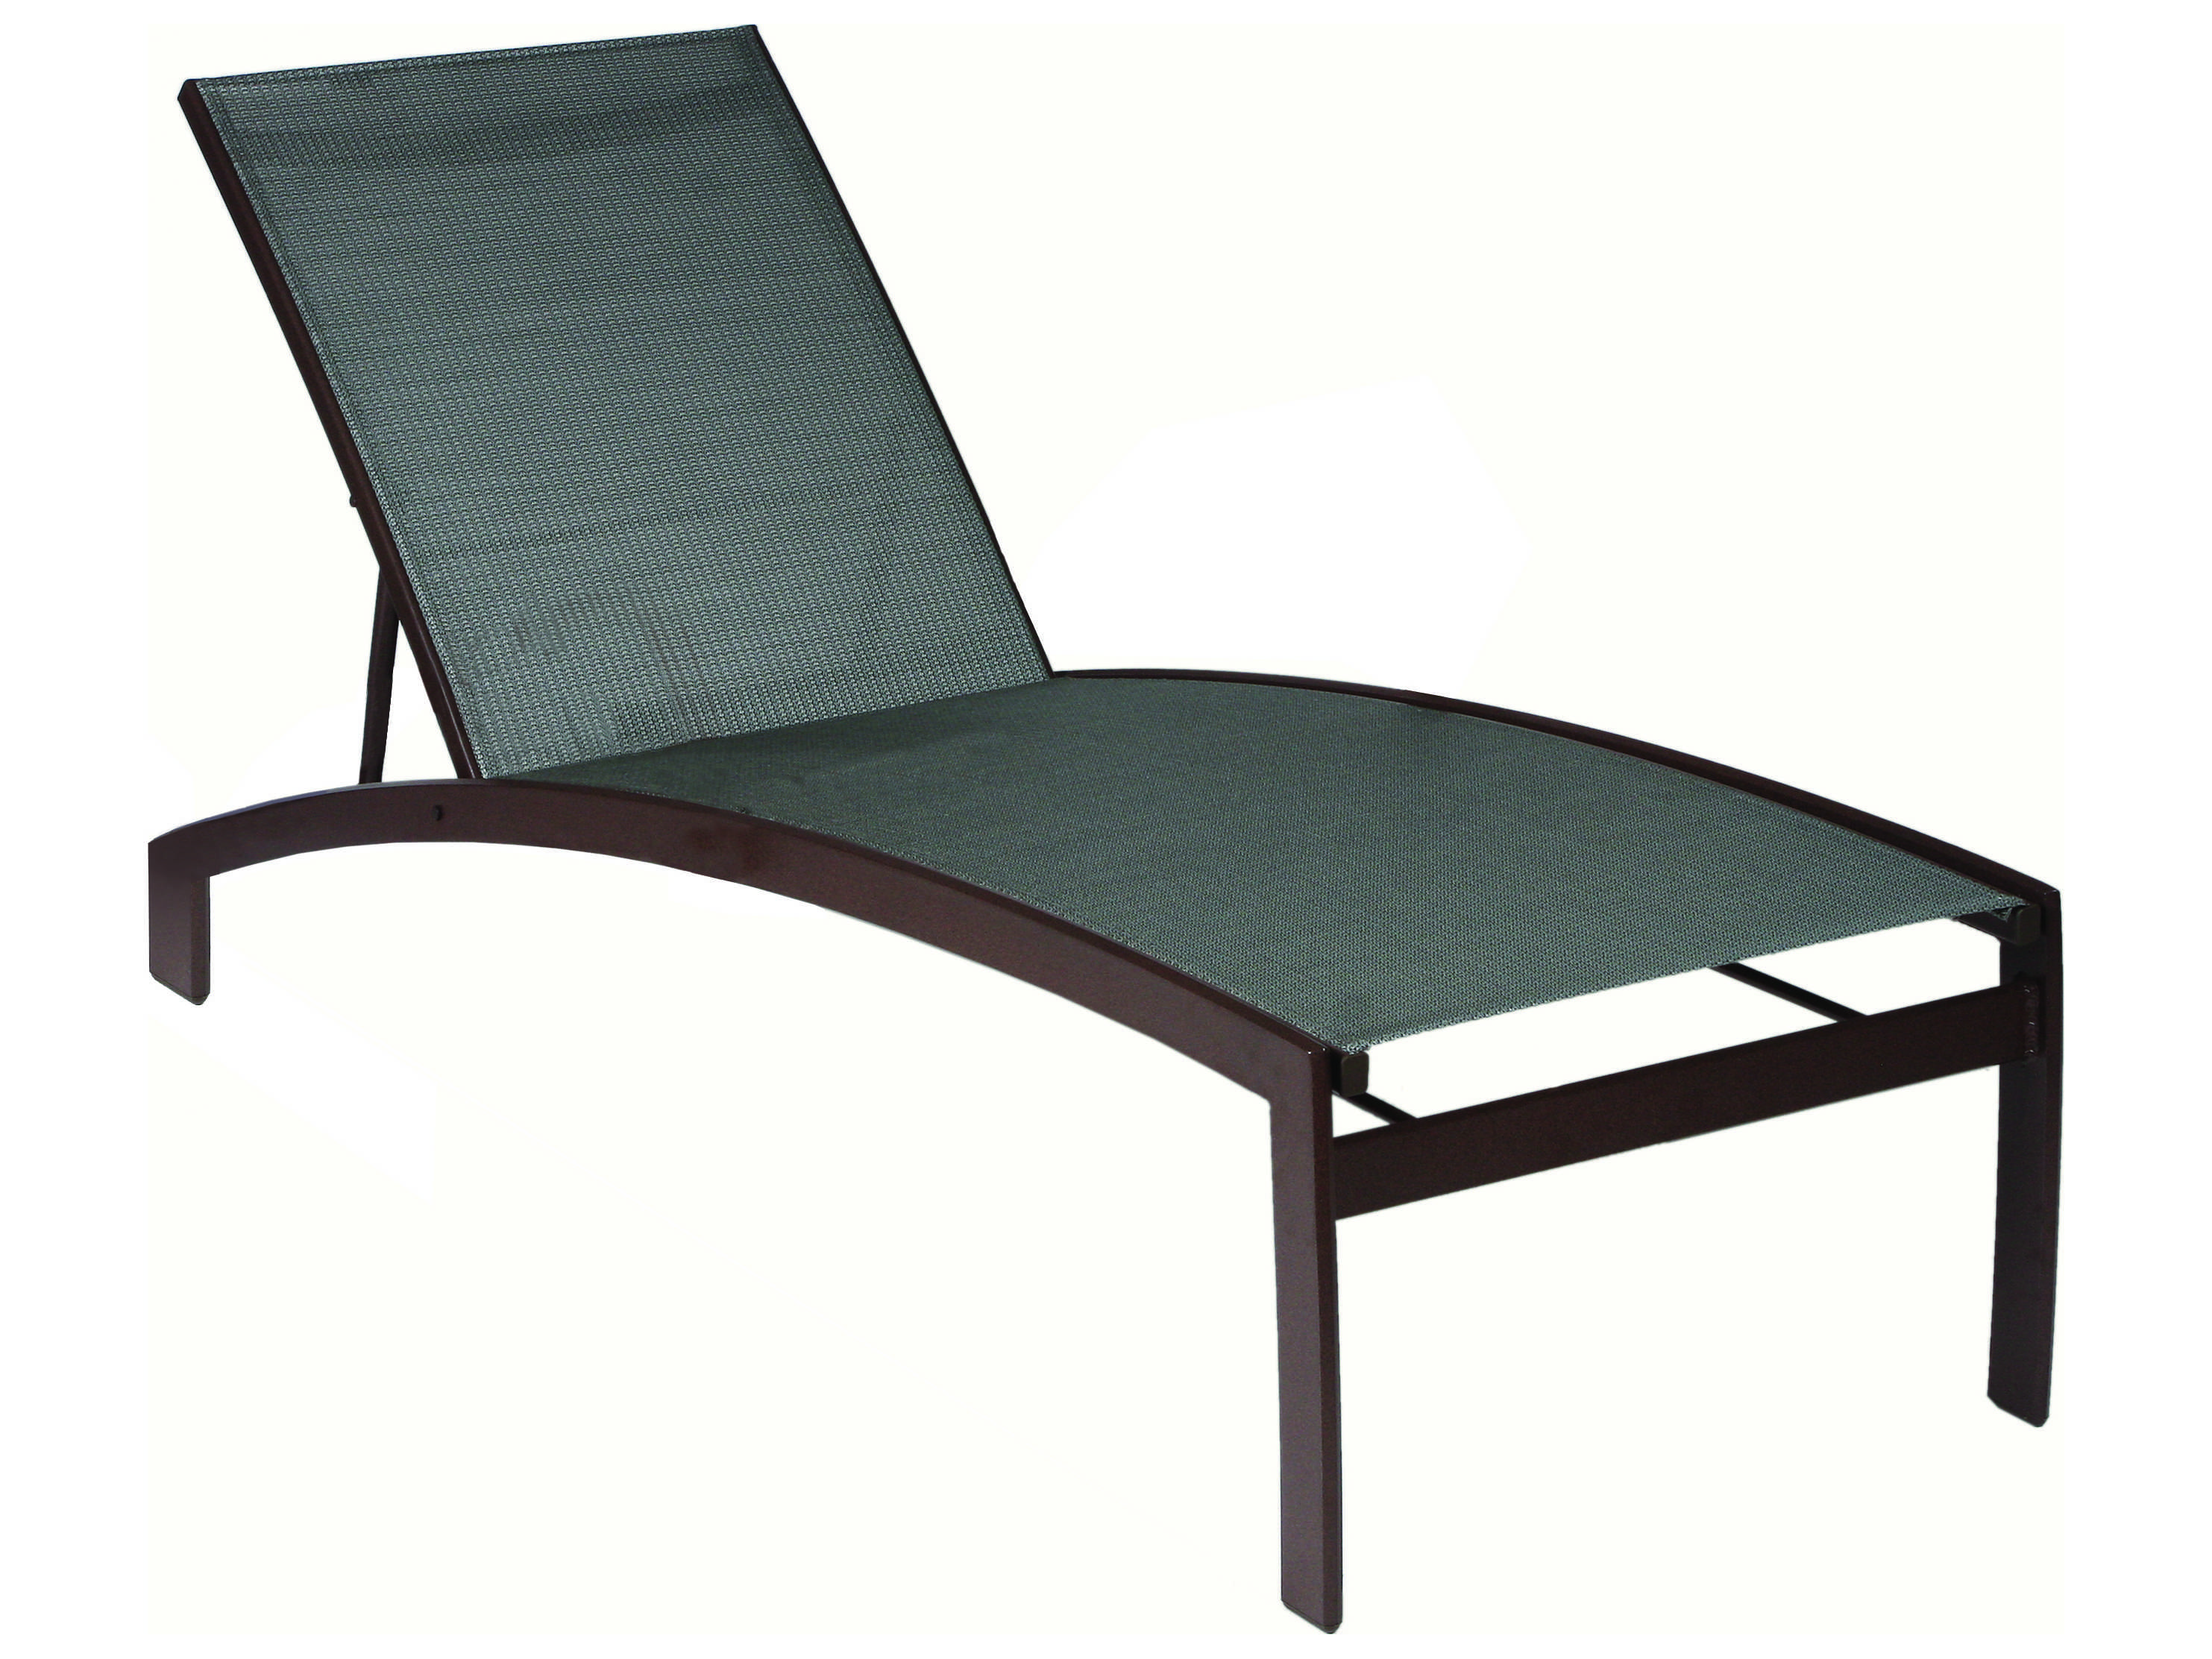 Suncoast vision sling cast aluminum chaise lounge 7993 for Chaise lounge aluminum